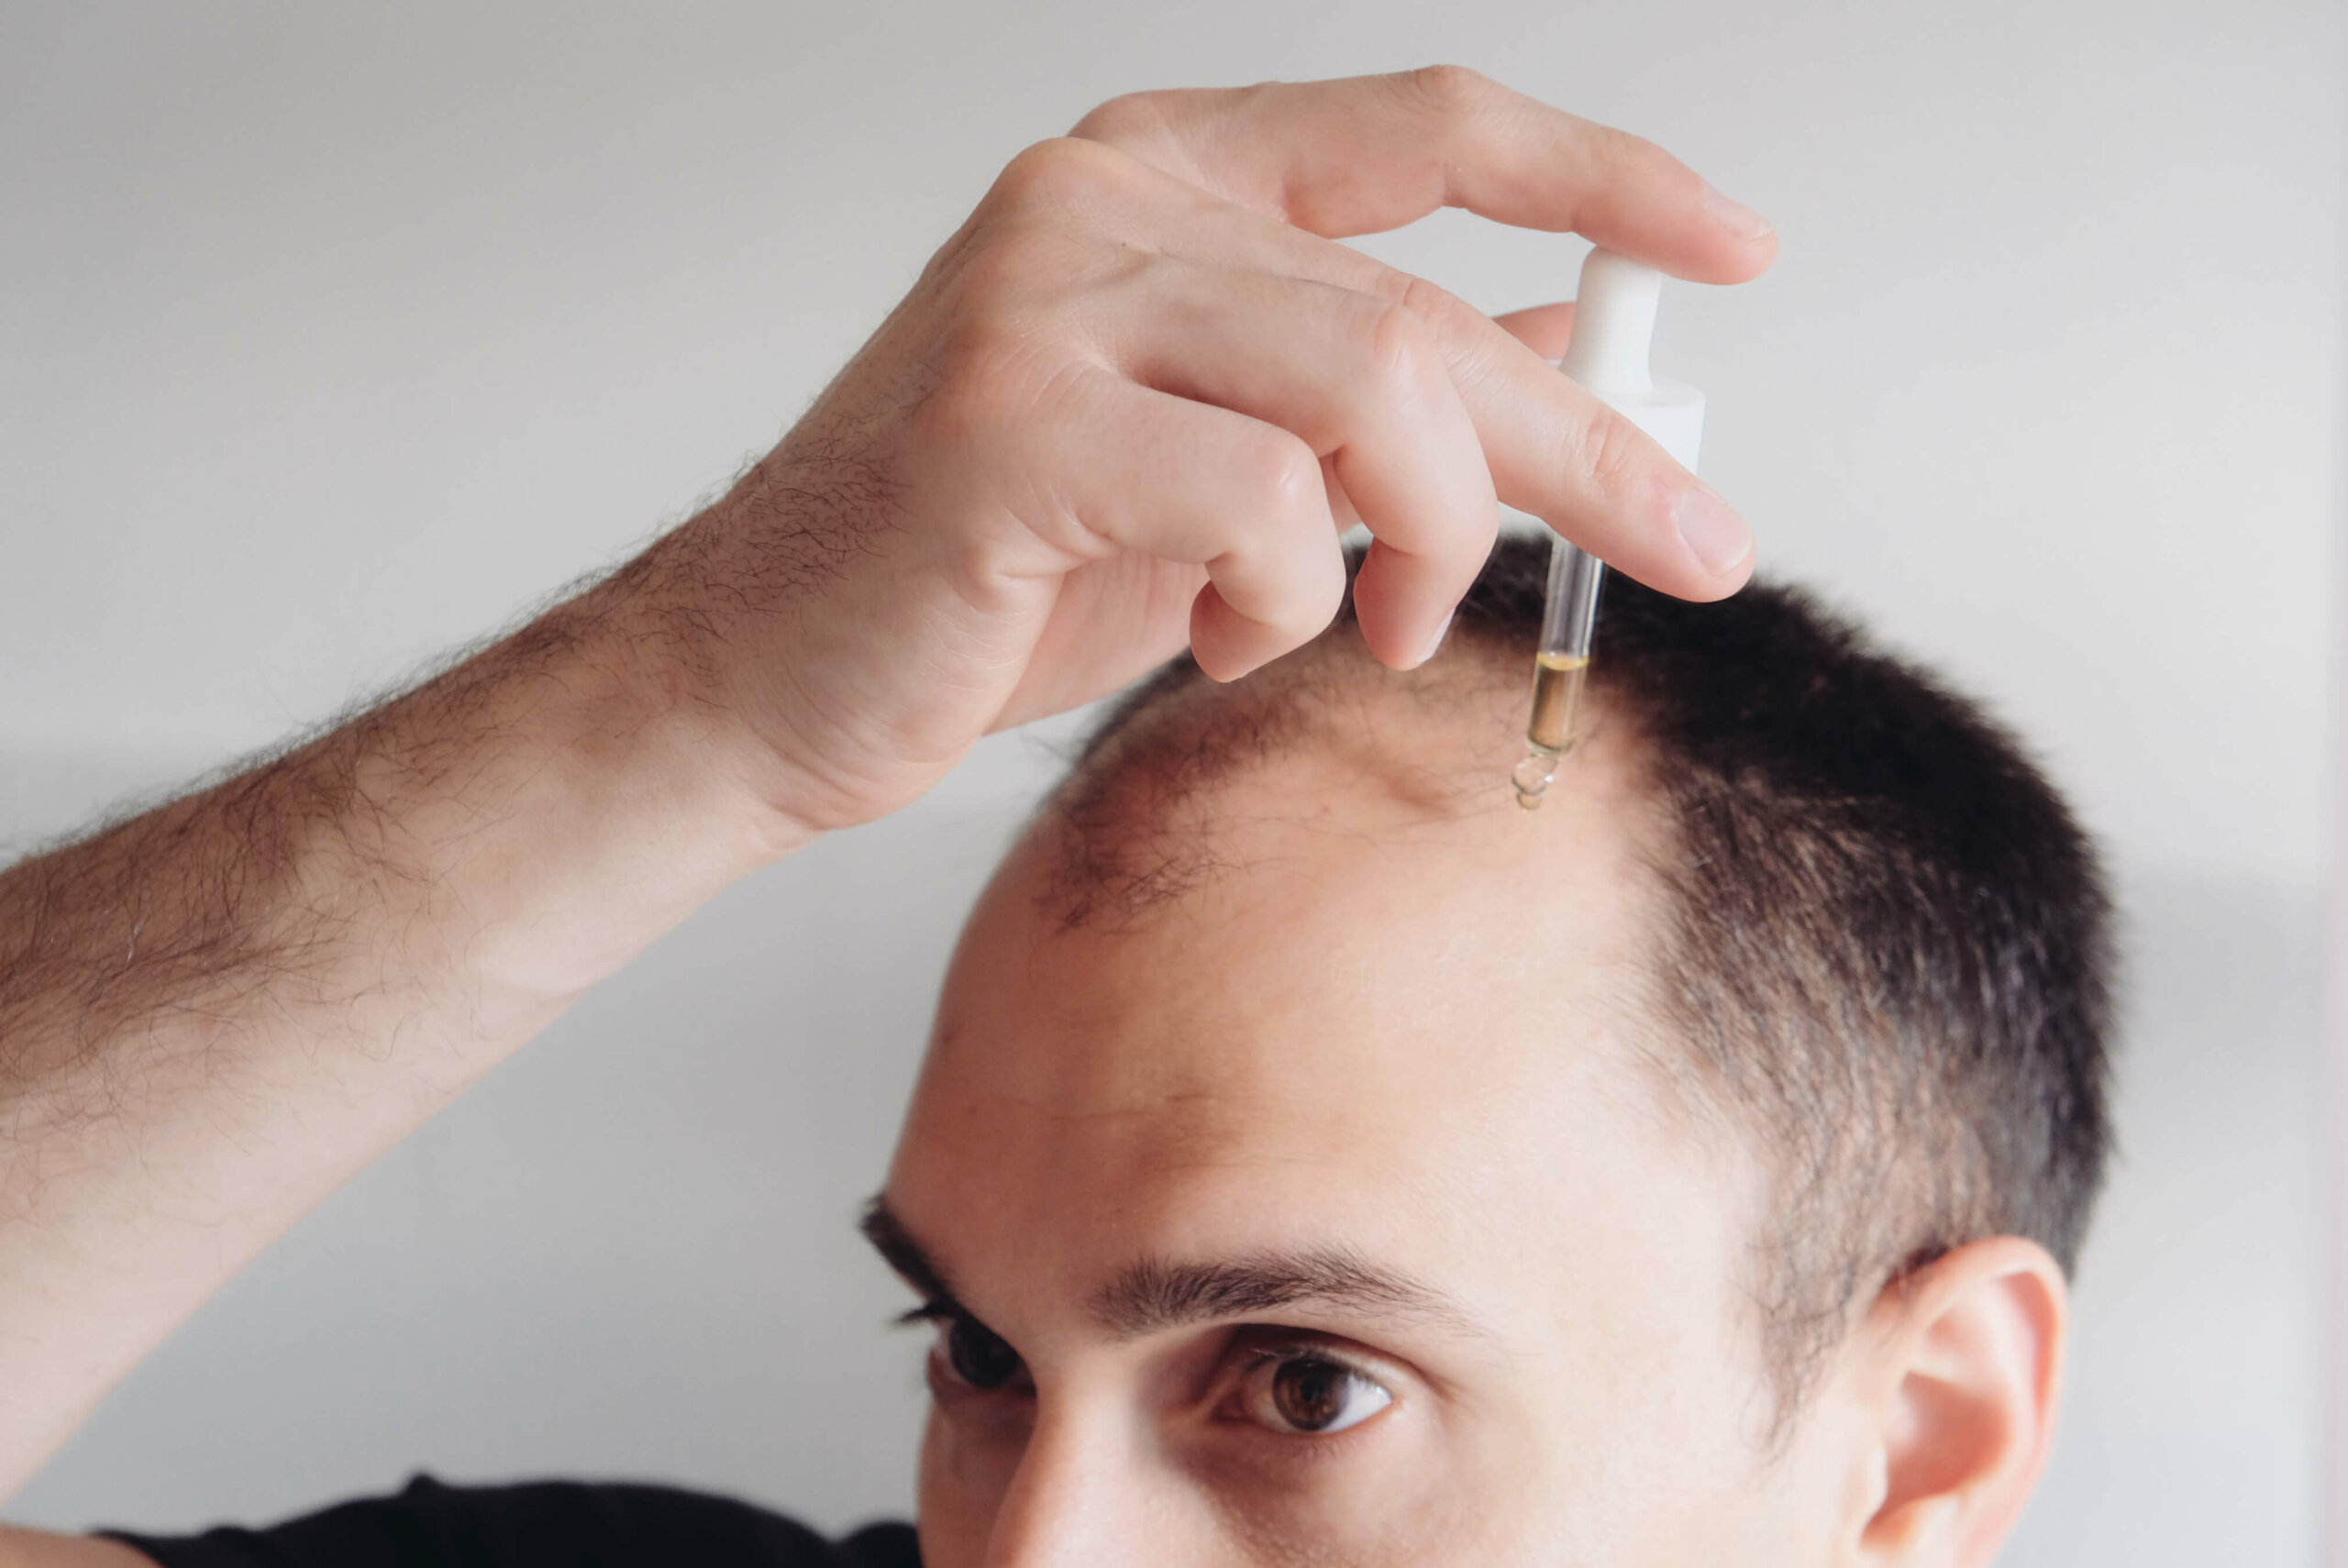 A close up of a man with frontal balding applying minoxidil to his hairline and temples.